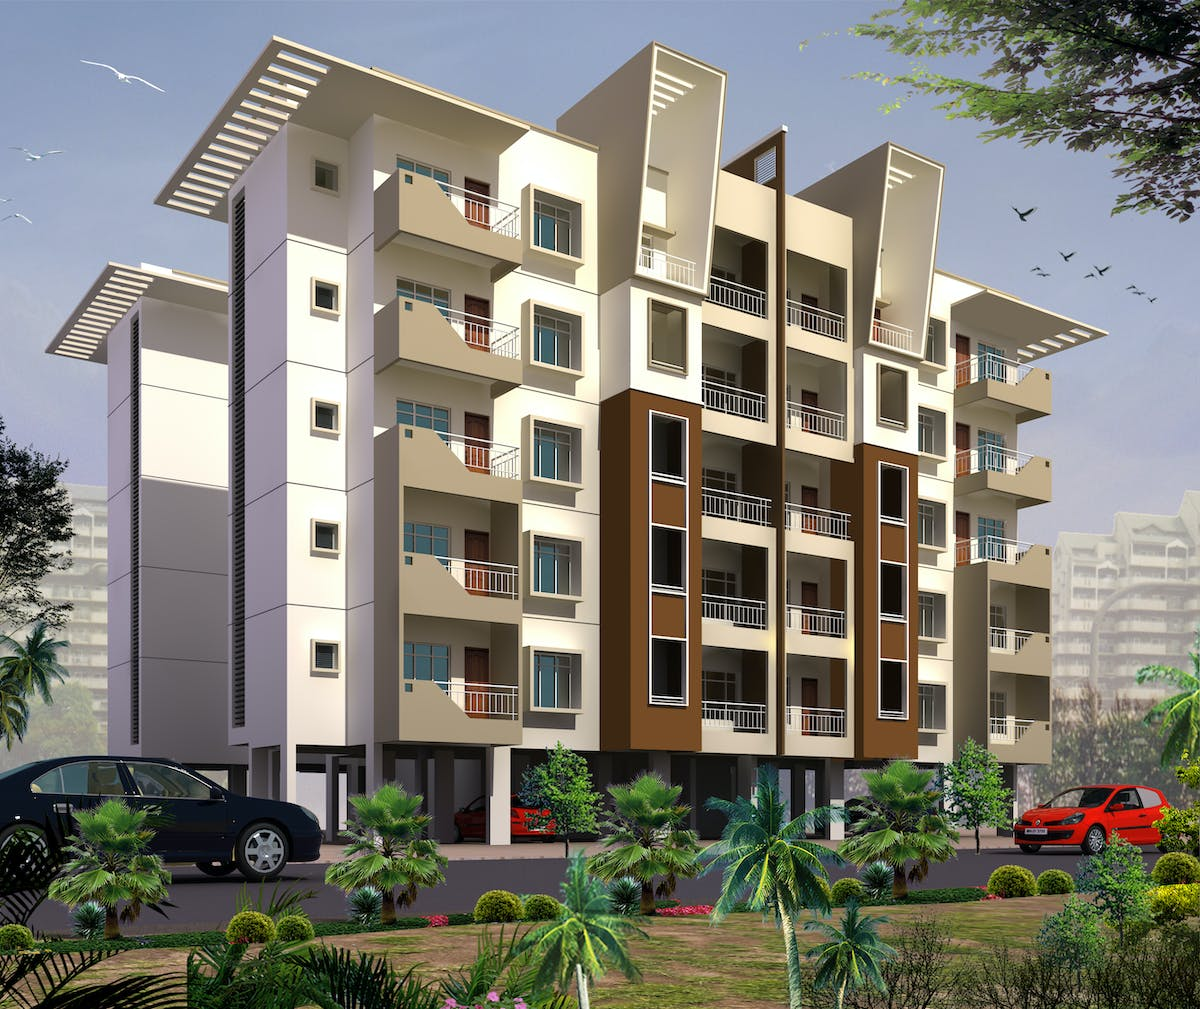 Affordable Appartments: Affordable Housing Scheme Under JNNURM's BUSP-on PPP Model